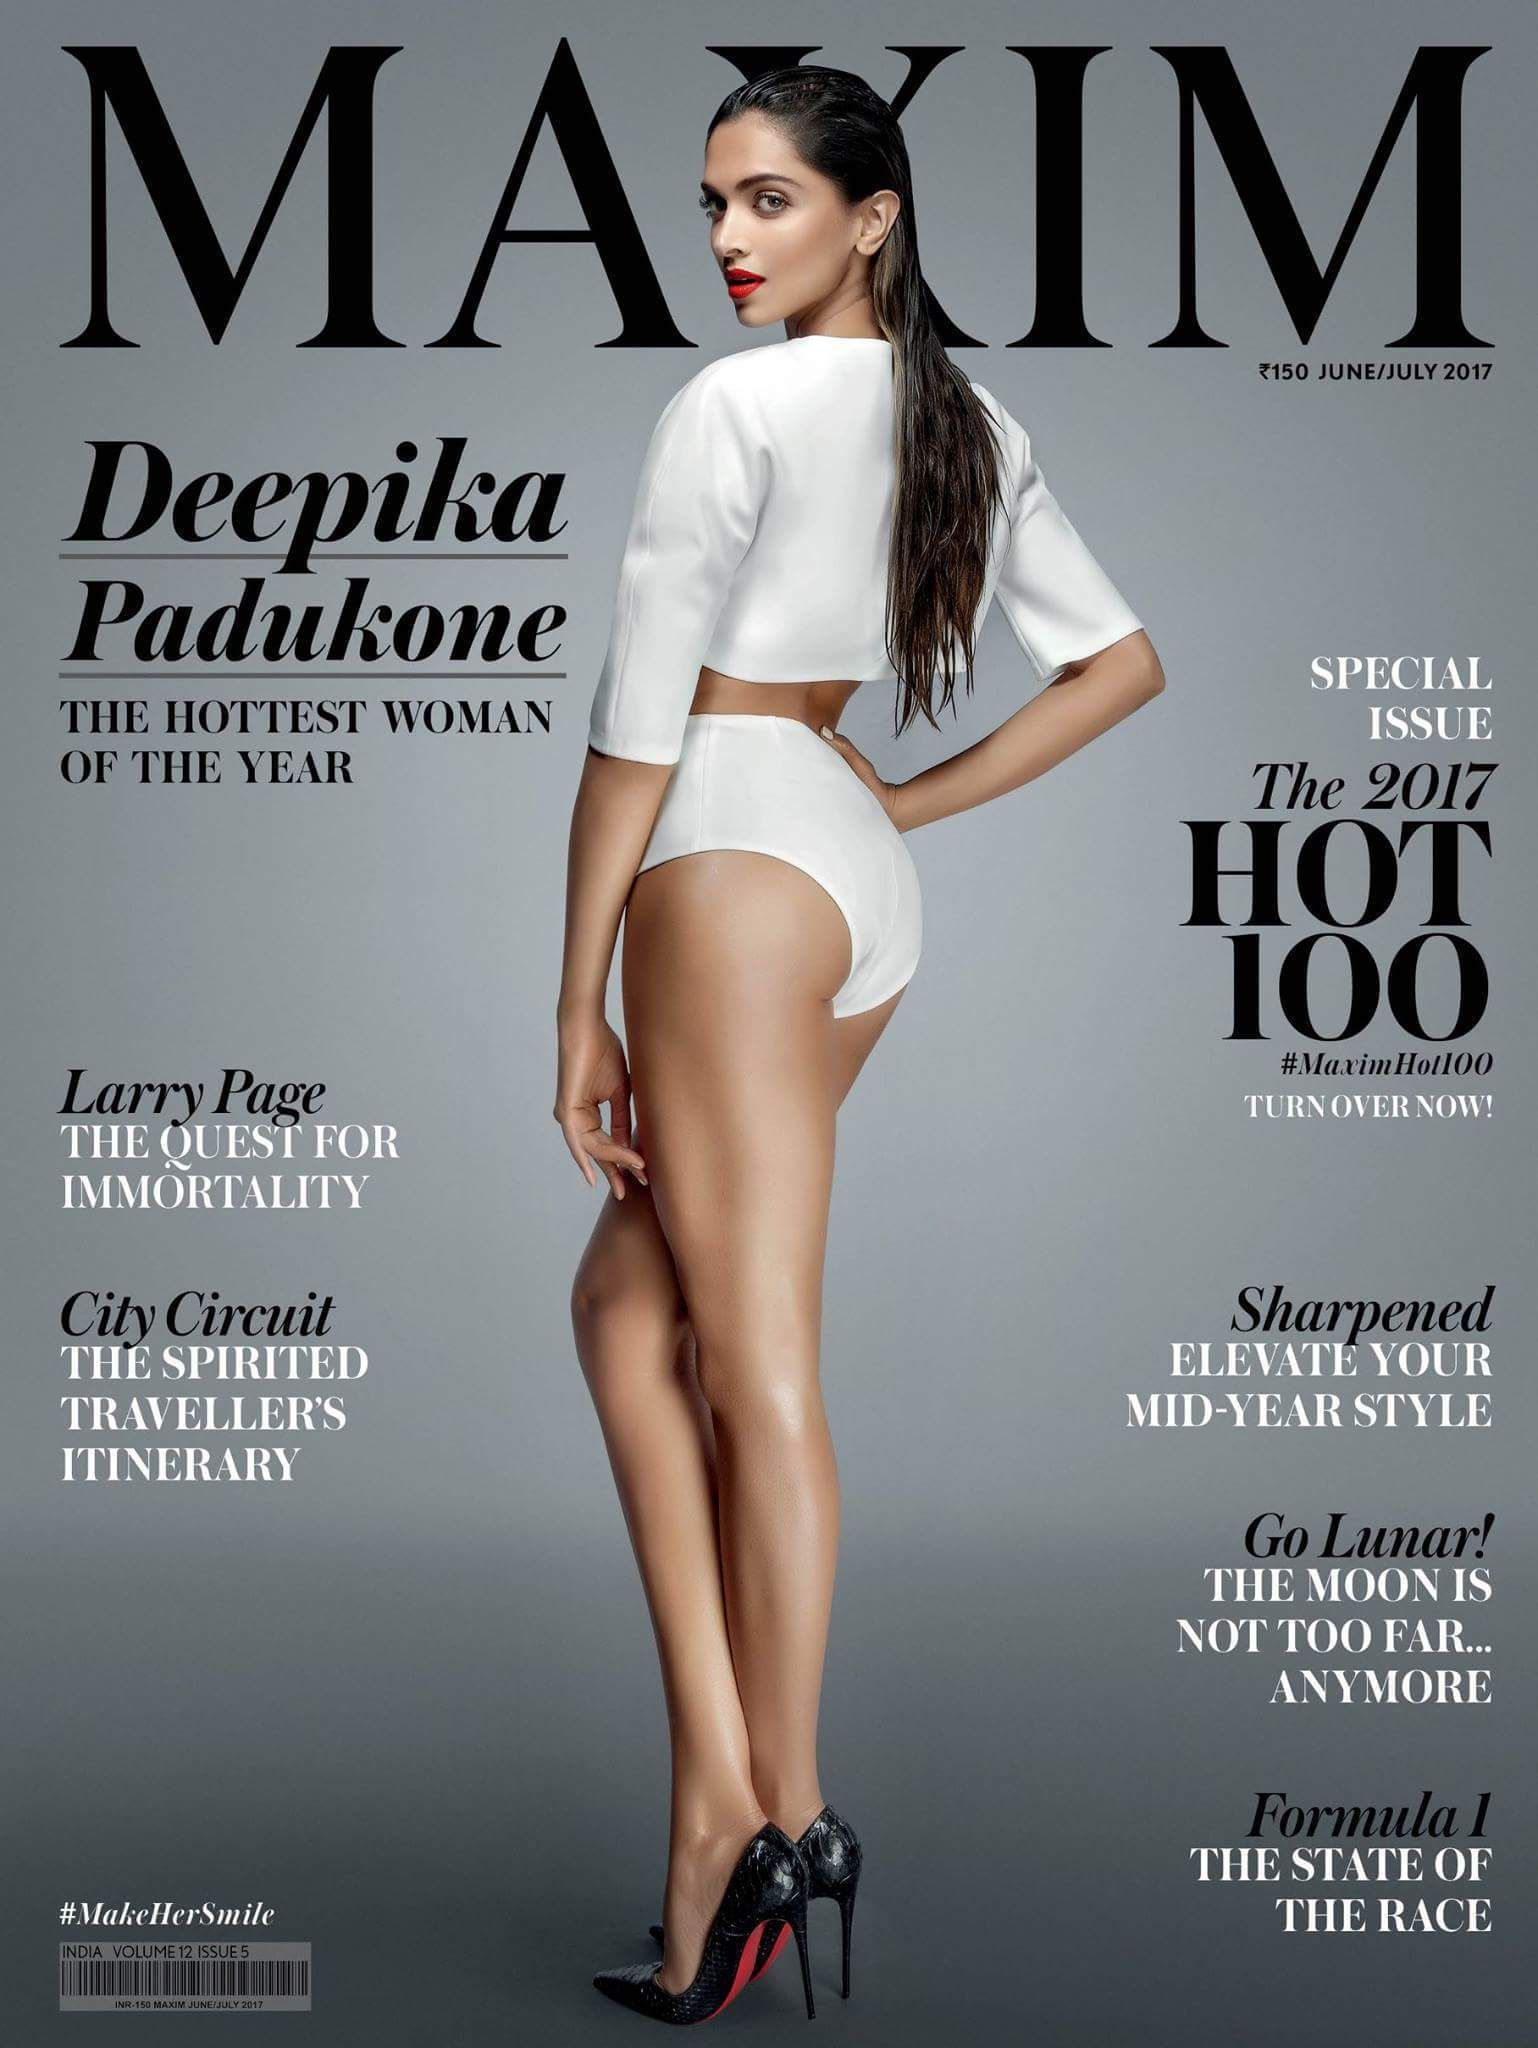 Deepika padukone deepika padukone pinterest deepika padukone hottest women of year deepika padukone flaunts for maxim magazine june the stunning leggy lass has topped the list of hottest women of the year curated by voltagebd Gallery